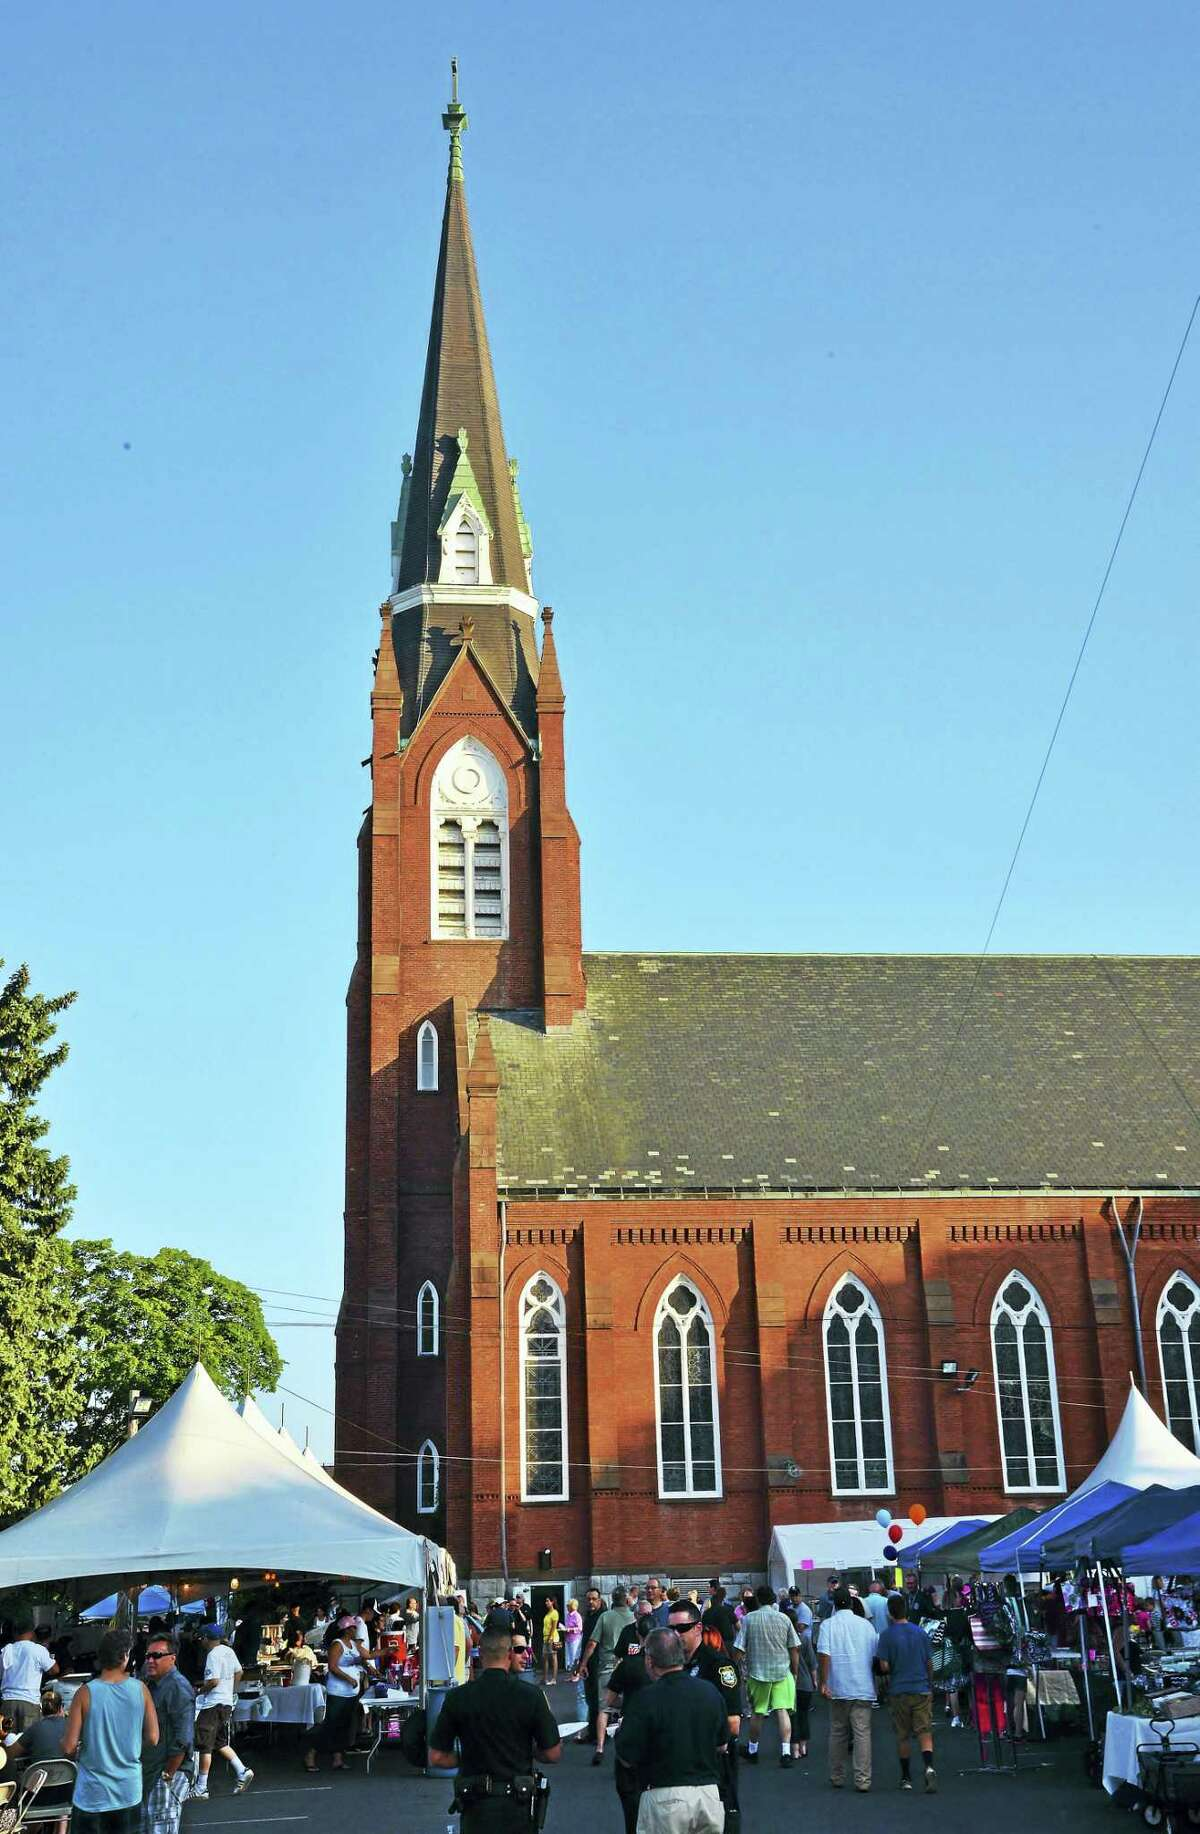 The 2015 Summer Festival at St. Mary's Church in Derby.